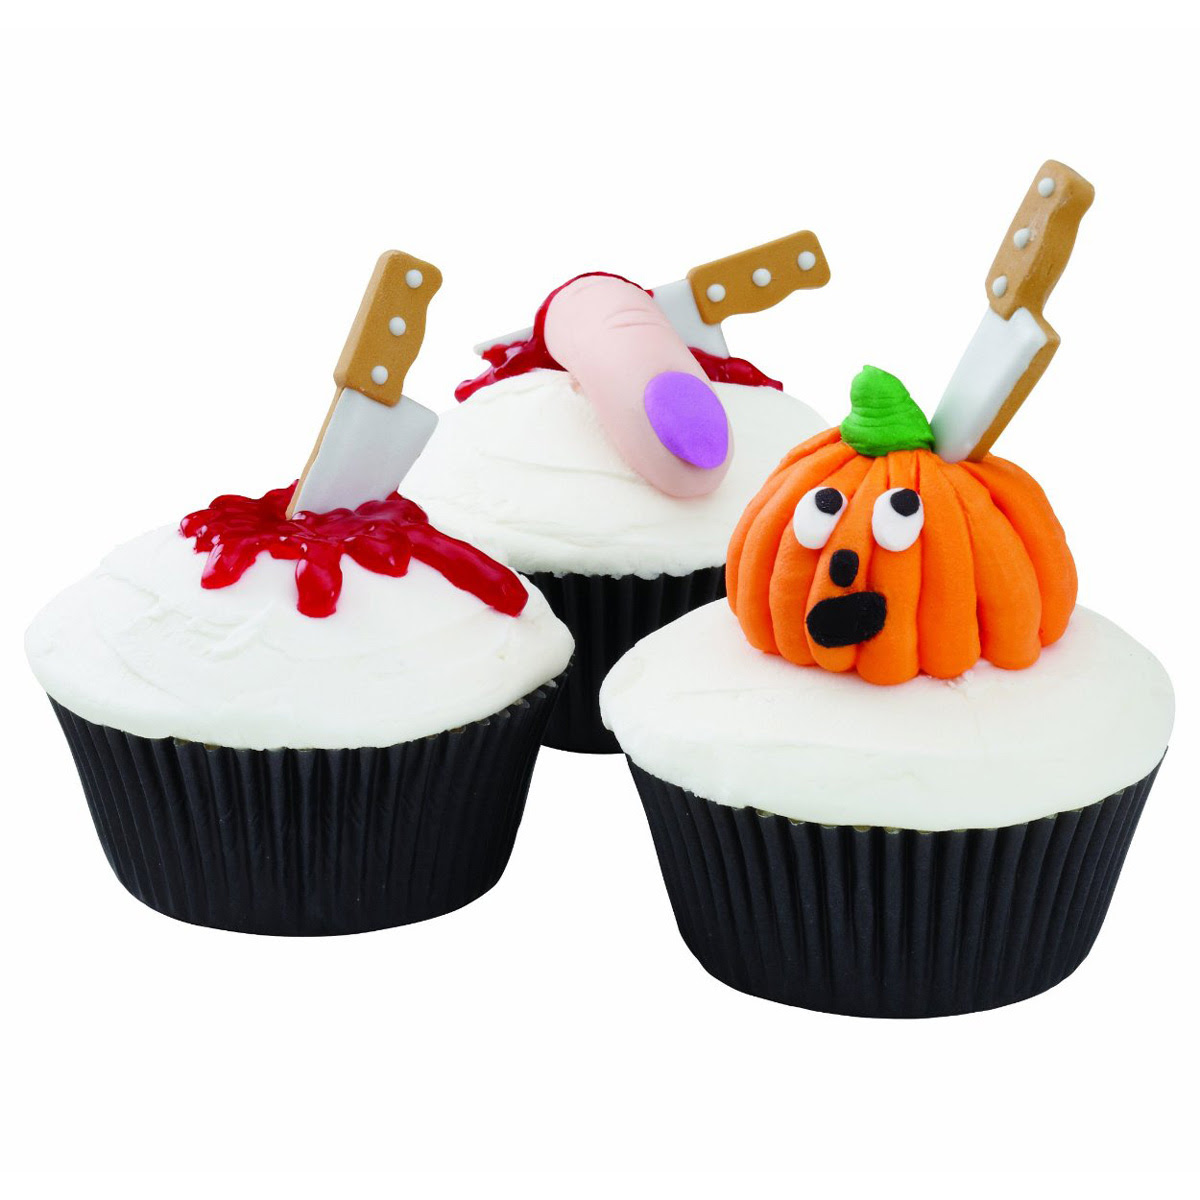 Wilton Halloween Knife Cupcake Icing Decorations - The ...